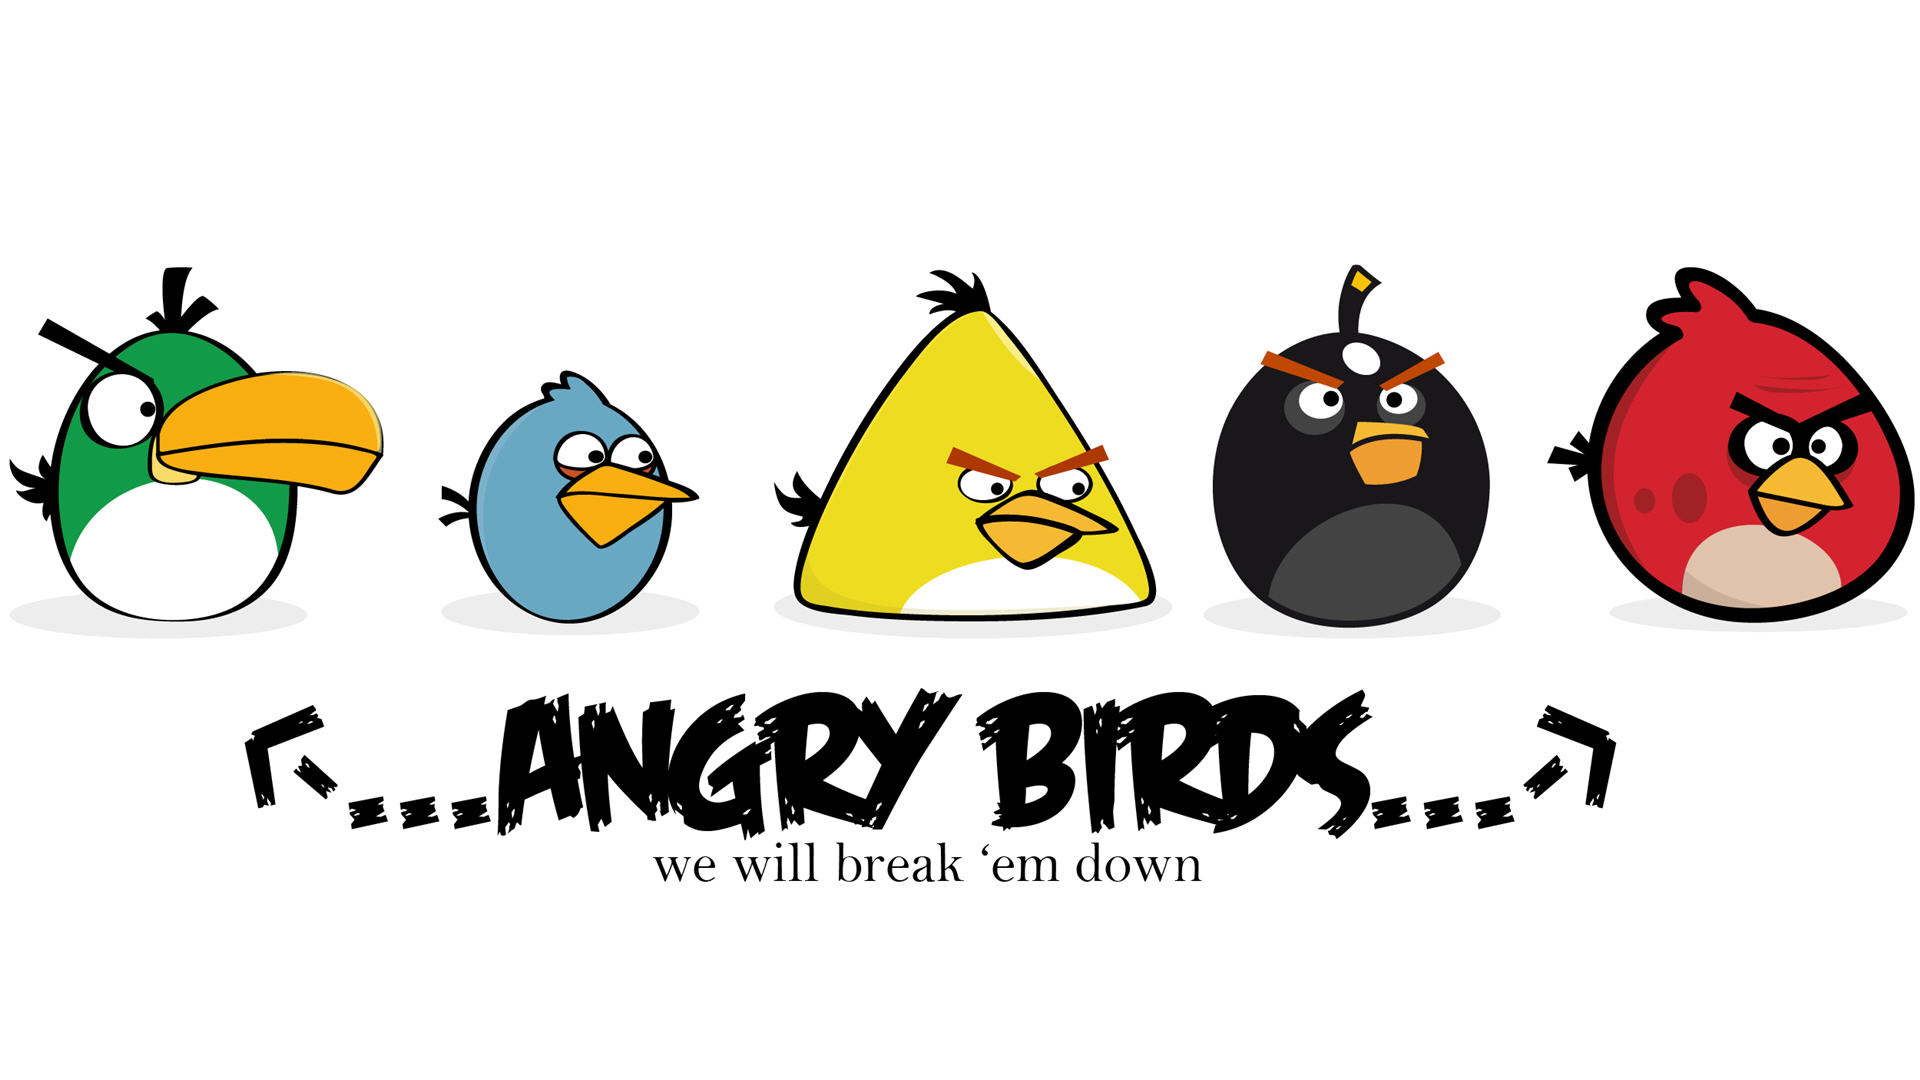 Angry birds wallpaper 13218 1920x1080 px angry birds wallpaper 13218 voltagebd Gallery